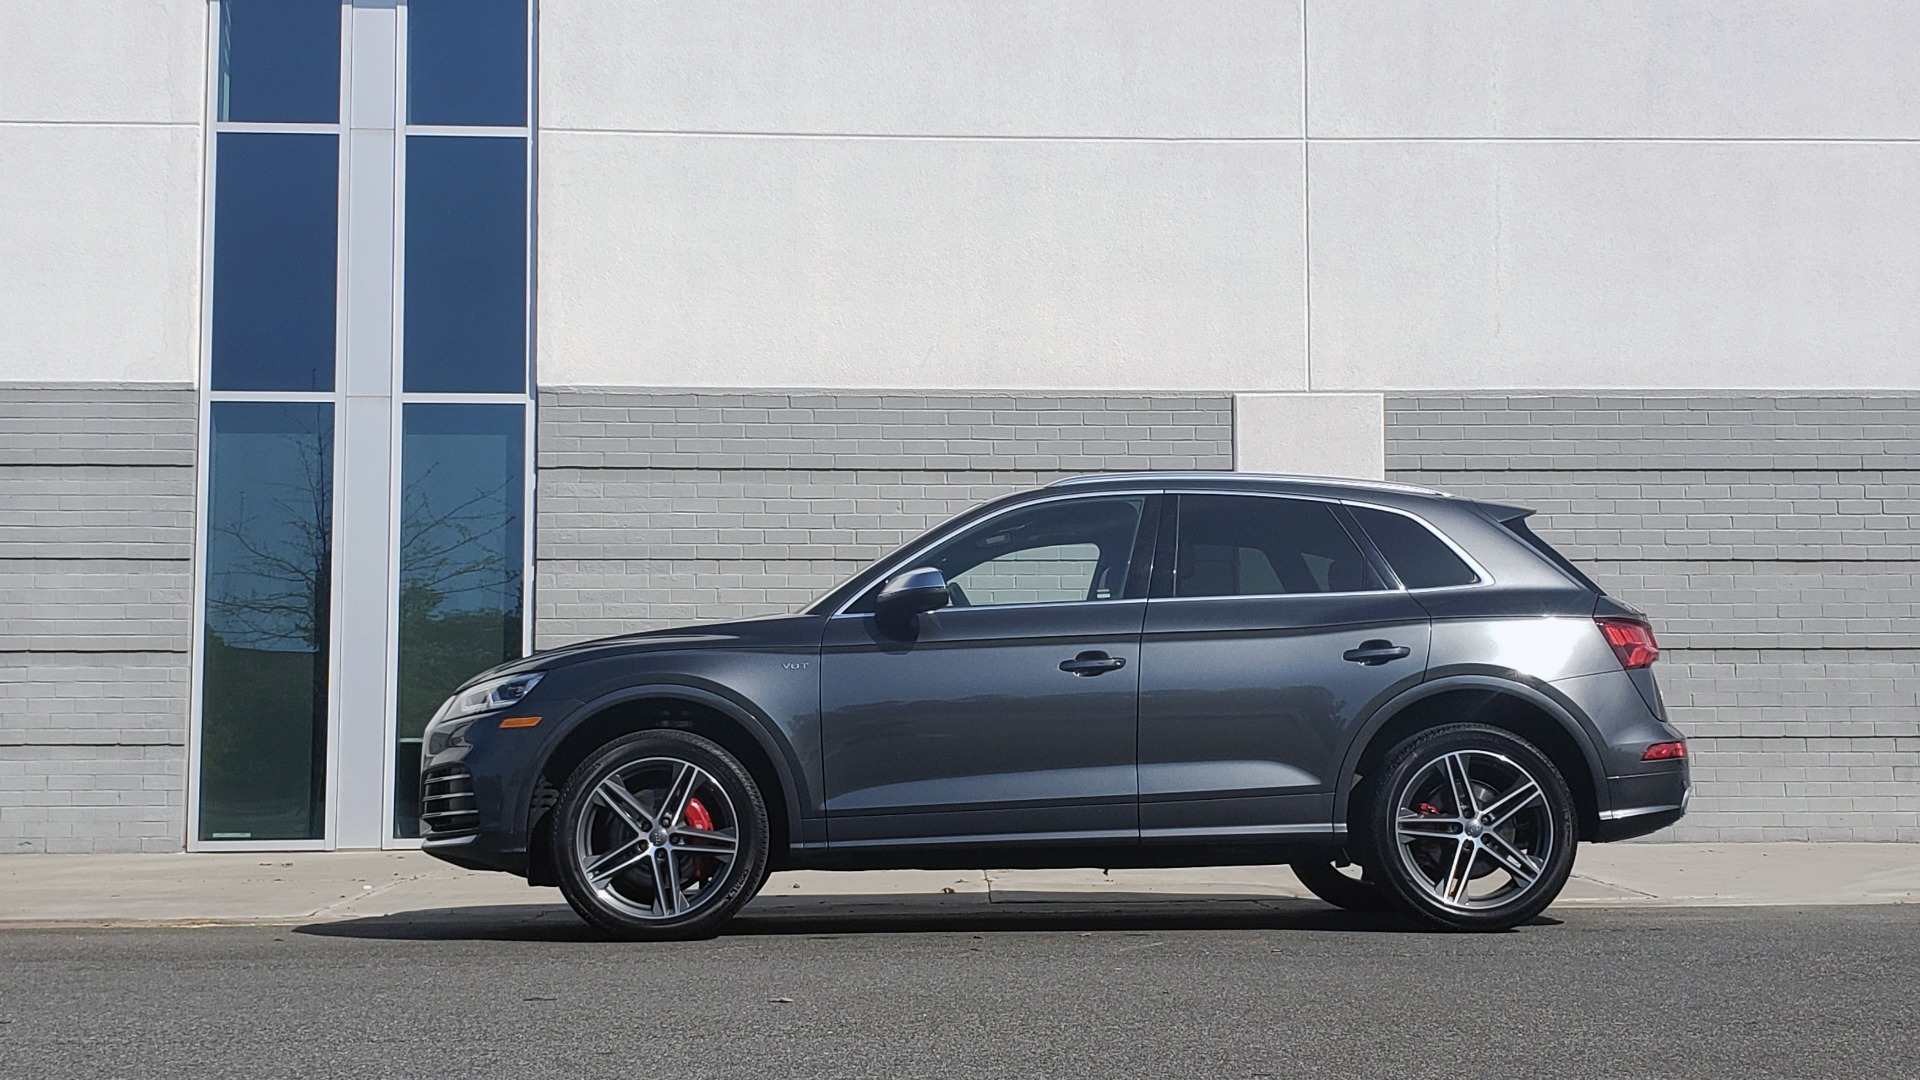 Used 2018 Audi SQ5 PREMIUM PLUS SPORT / NAV / B&O SND / SUNROOF / REARVIEW for sale Sold at Formula Imports in Charlotte NC 28227 4